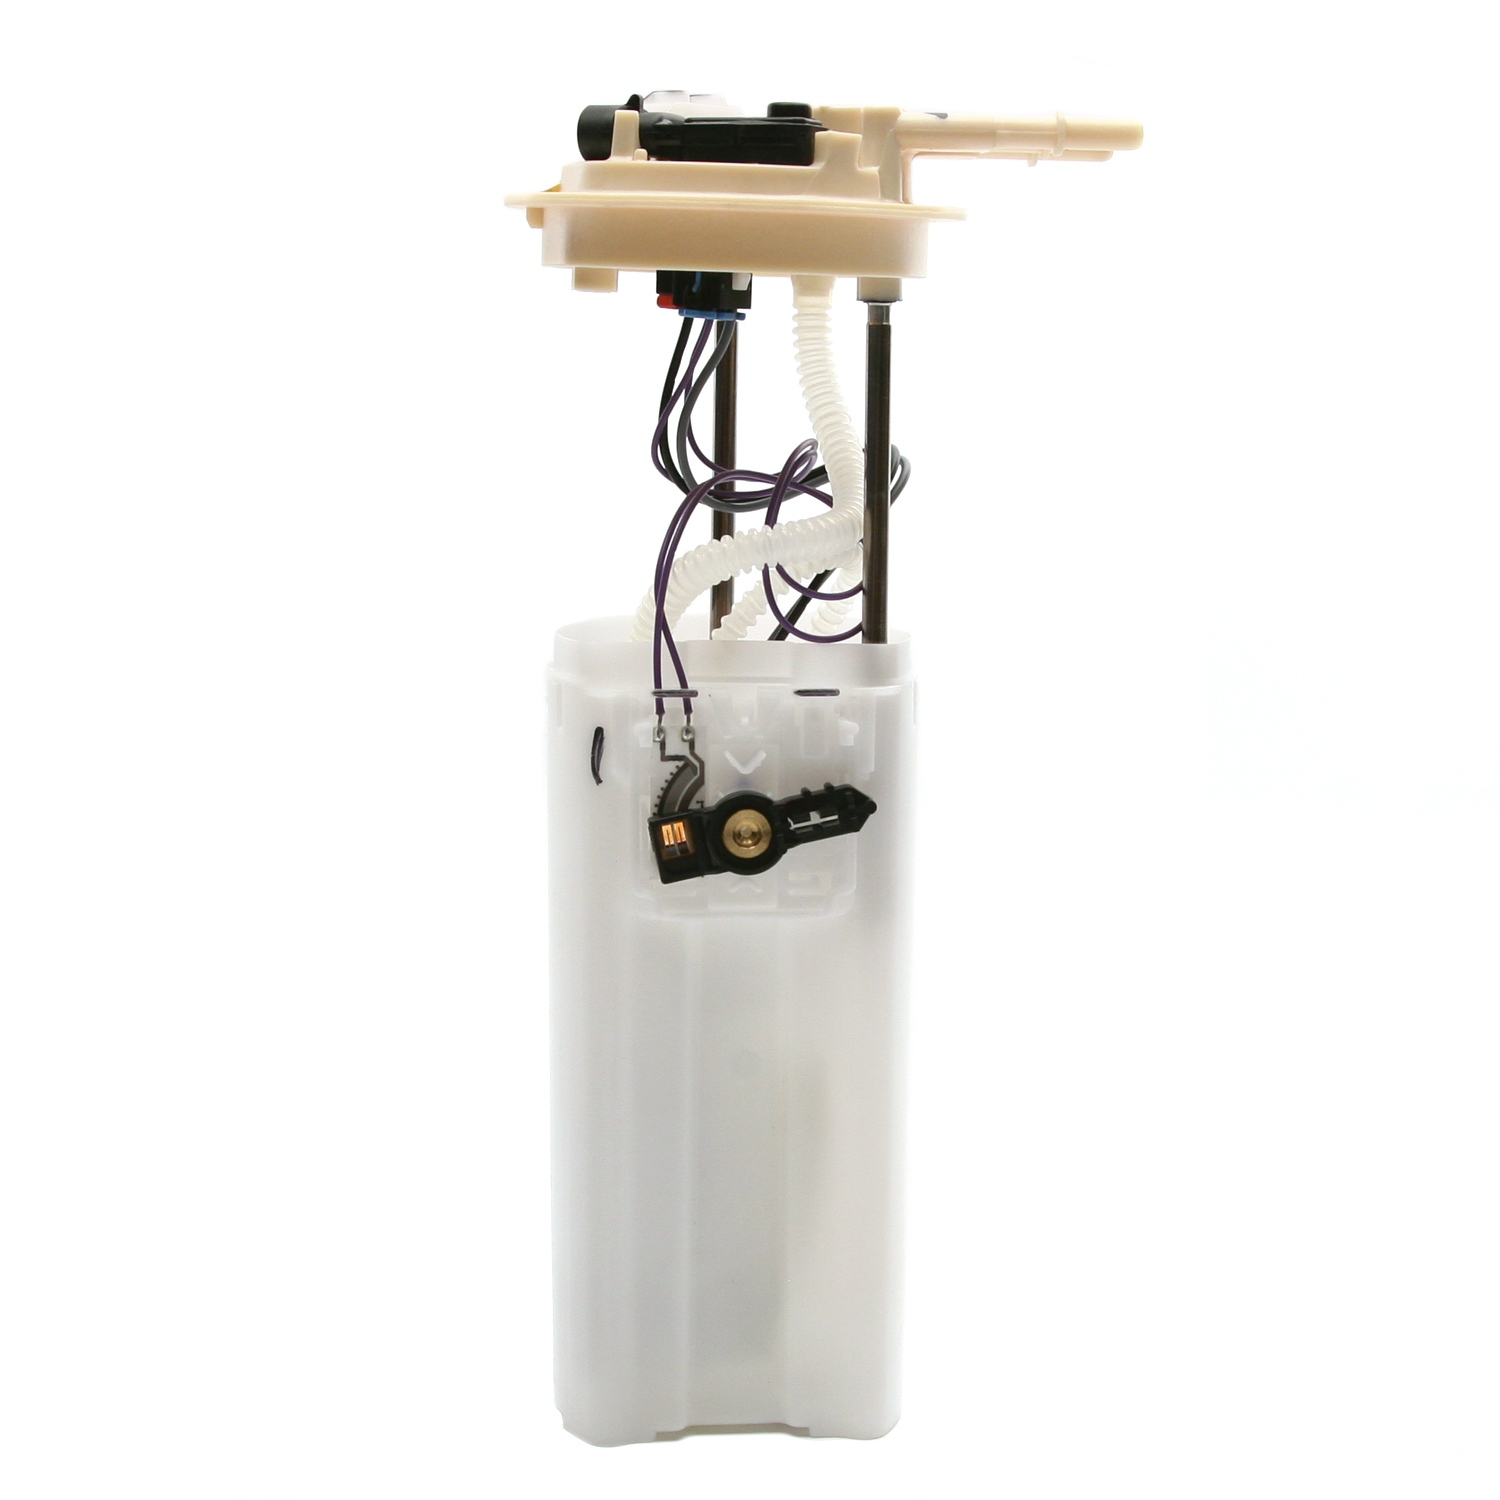 DELPHI - Fuel Pump Module Assembly - DPH FG0347